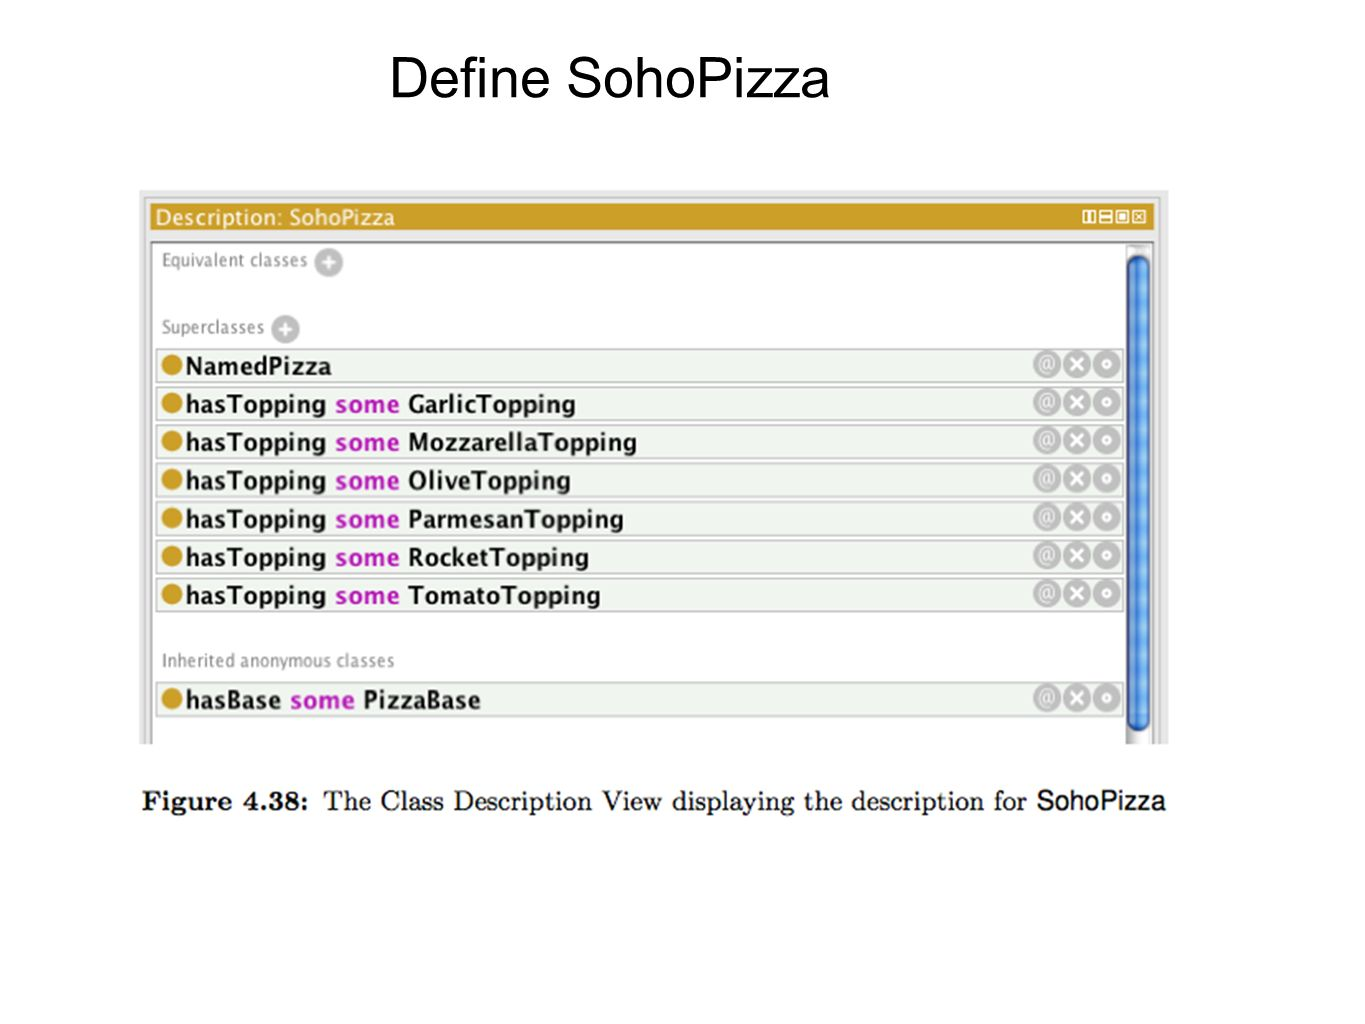 Define SohoPizza